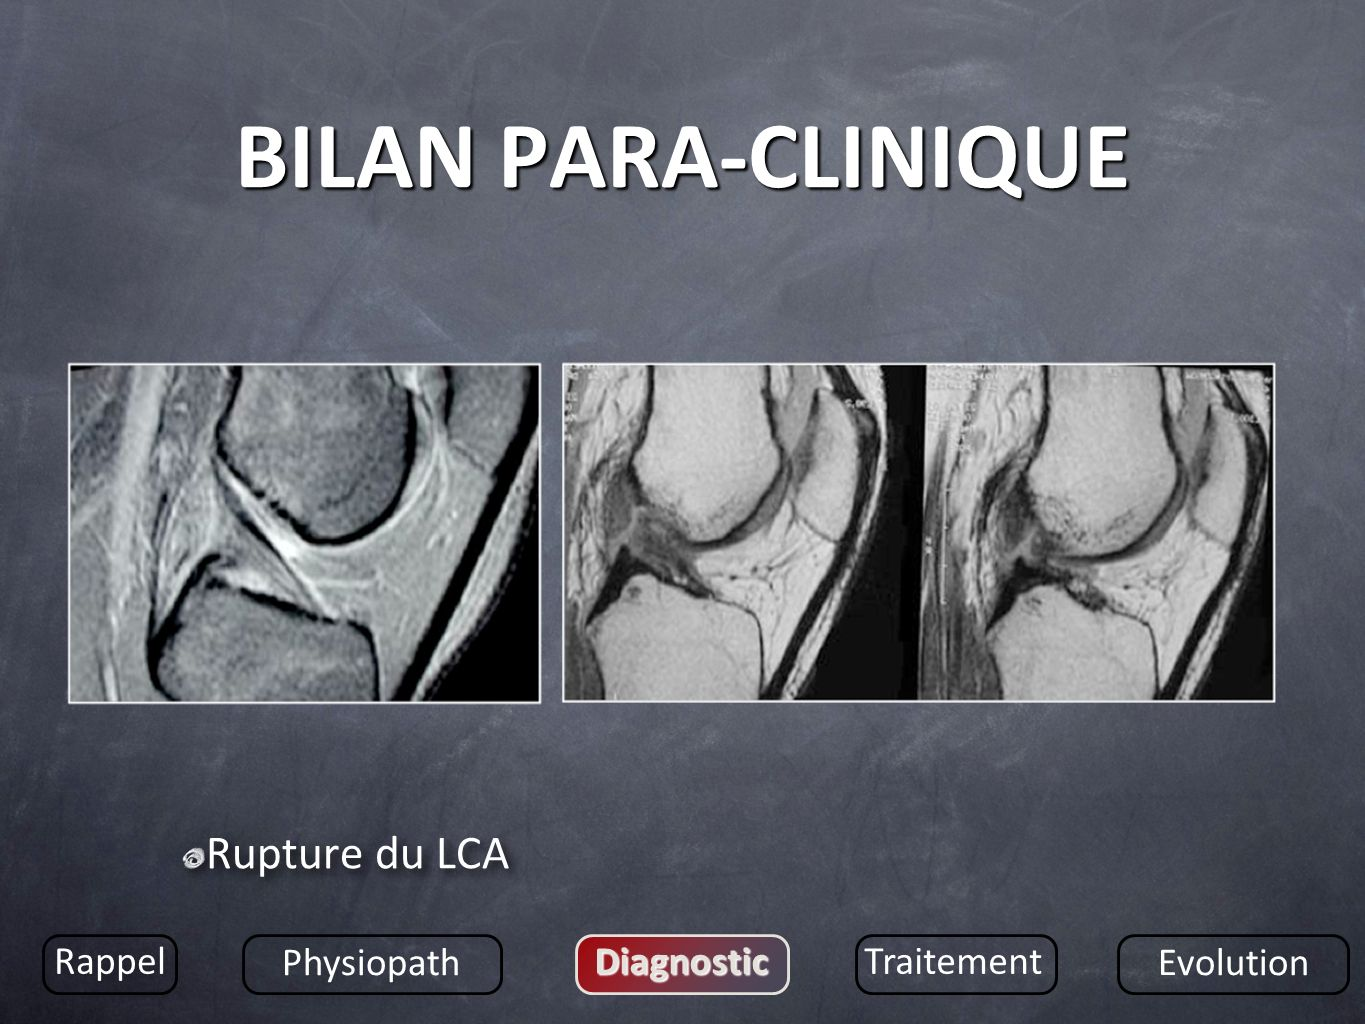 BILAN PARA-CLINIQUE Rupture du LCA Rappel Physiopath Diagnostic